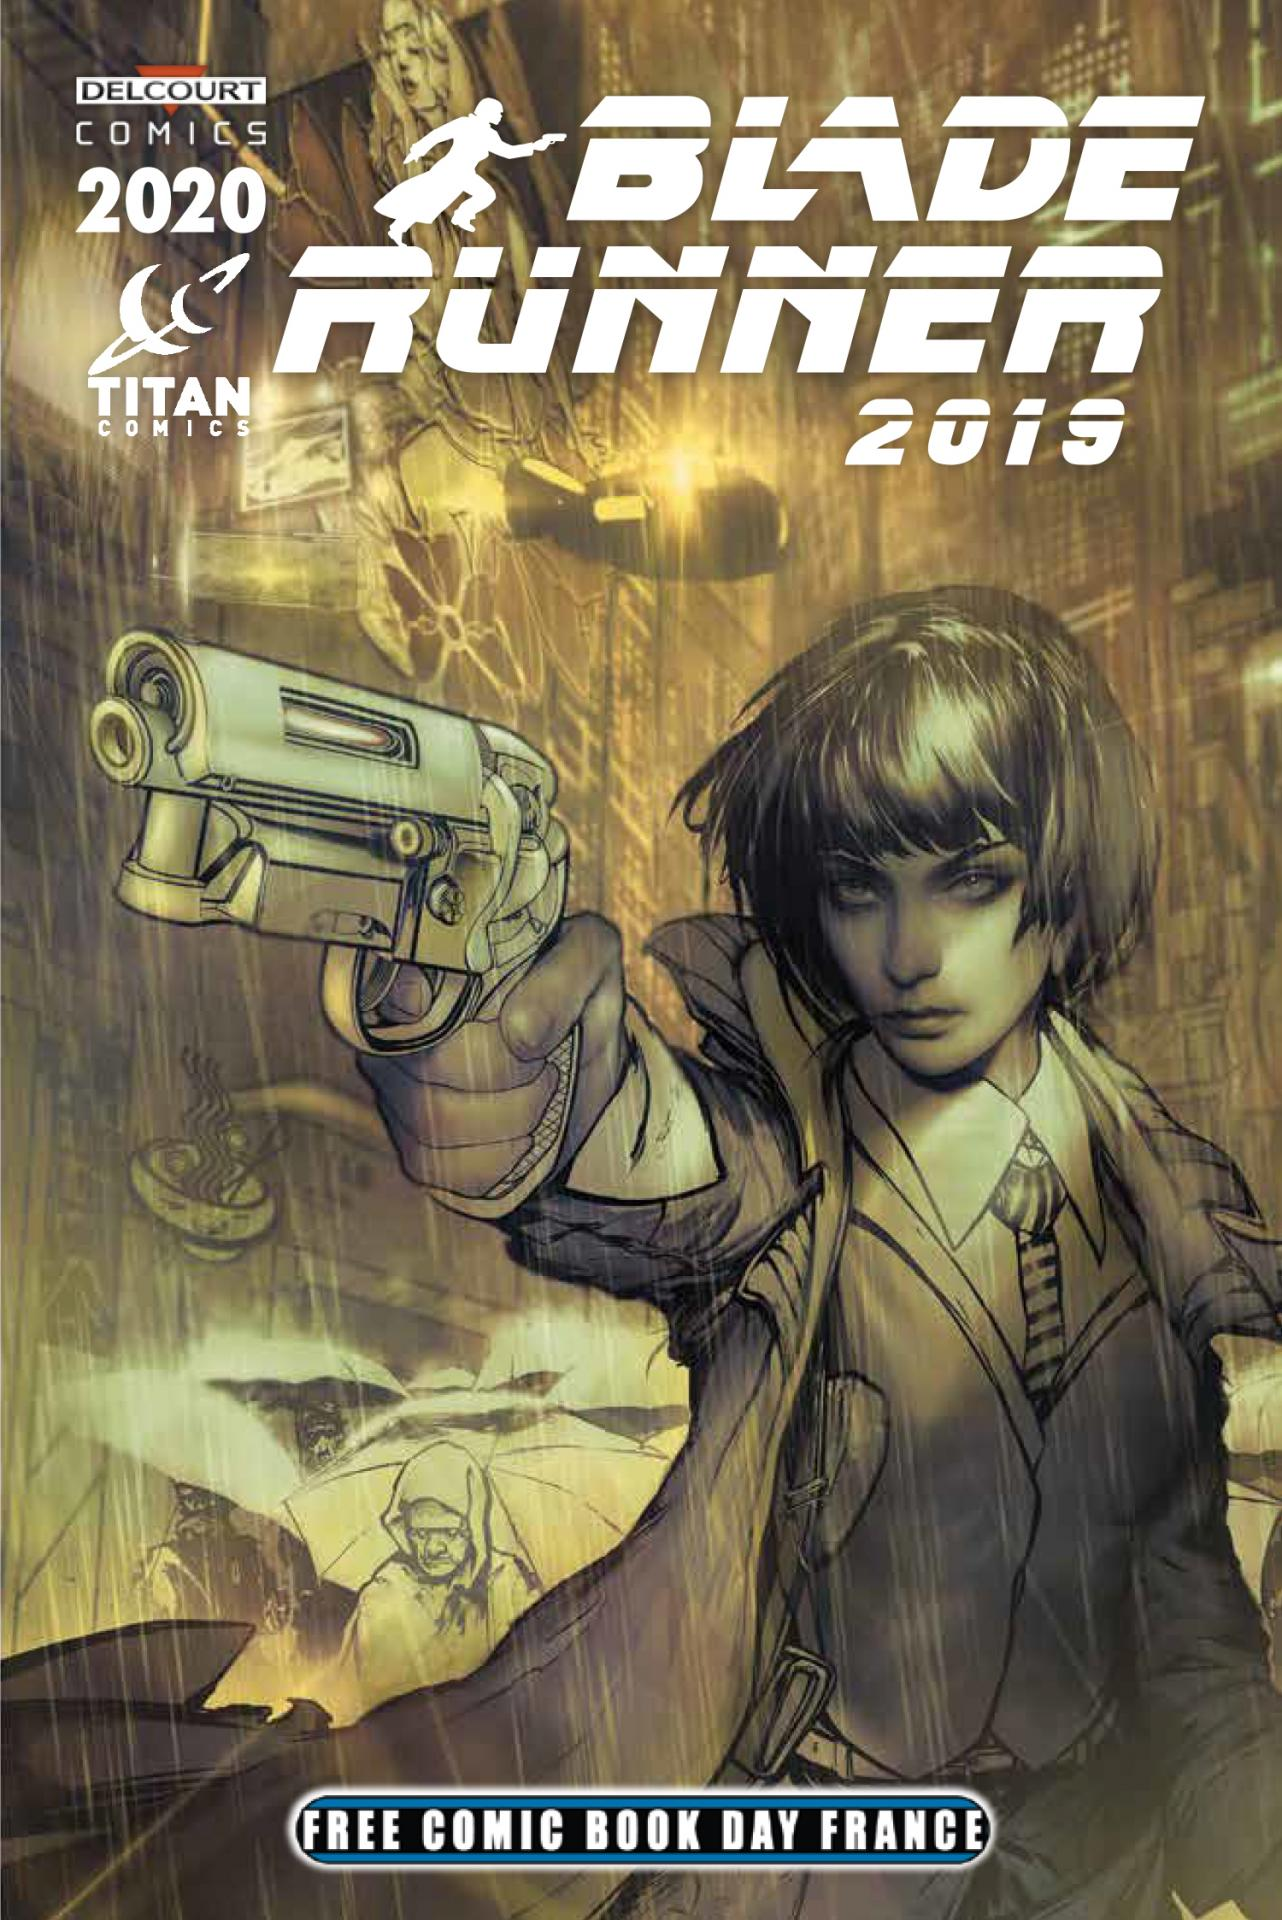 Delcourt free comic book day france 2020 blade runner 2019